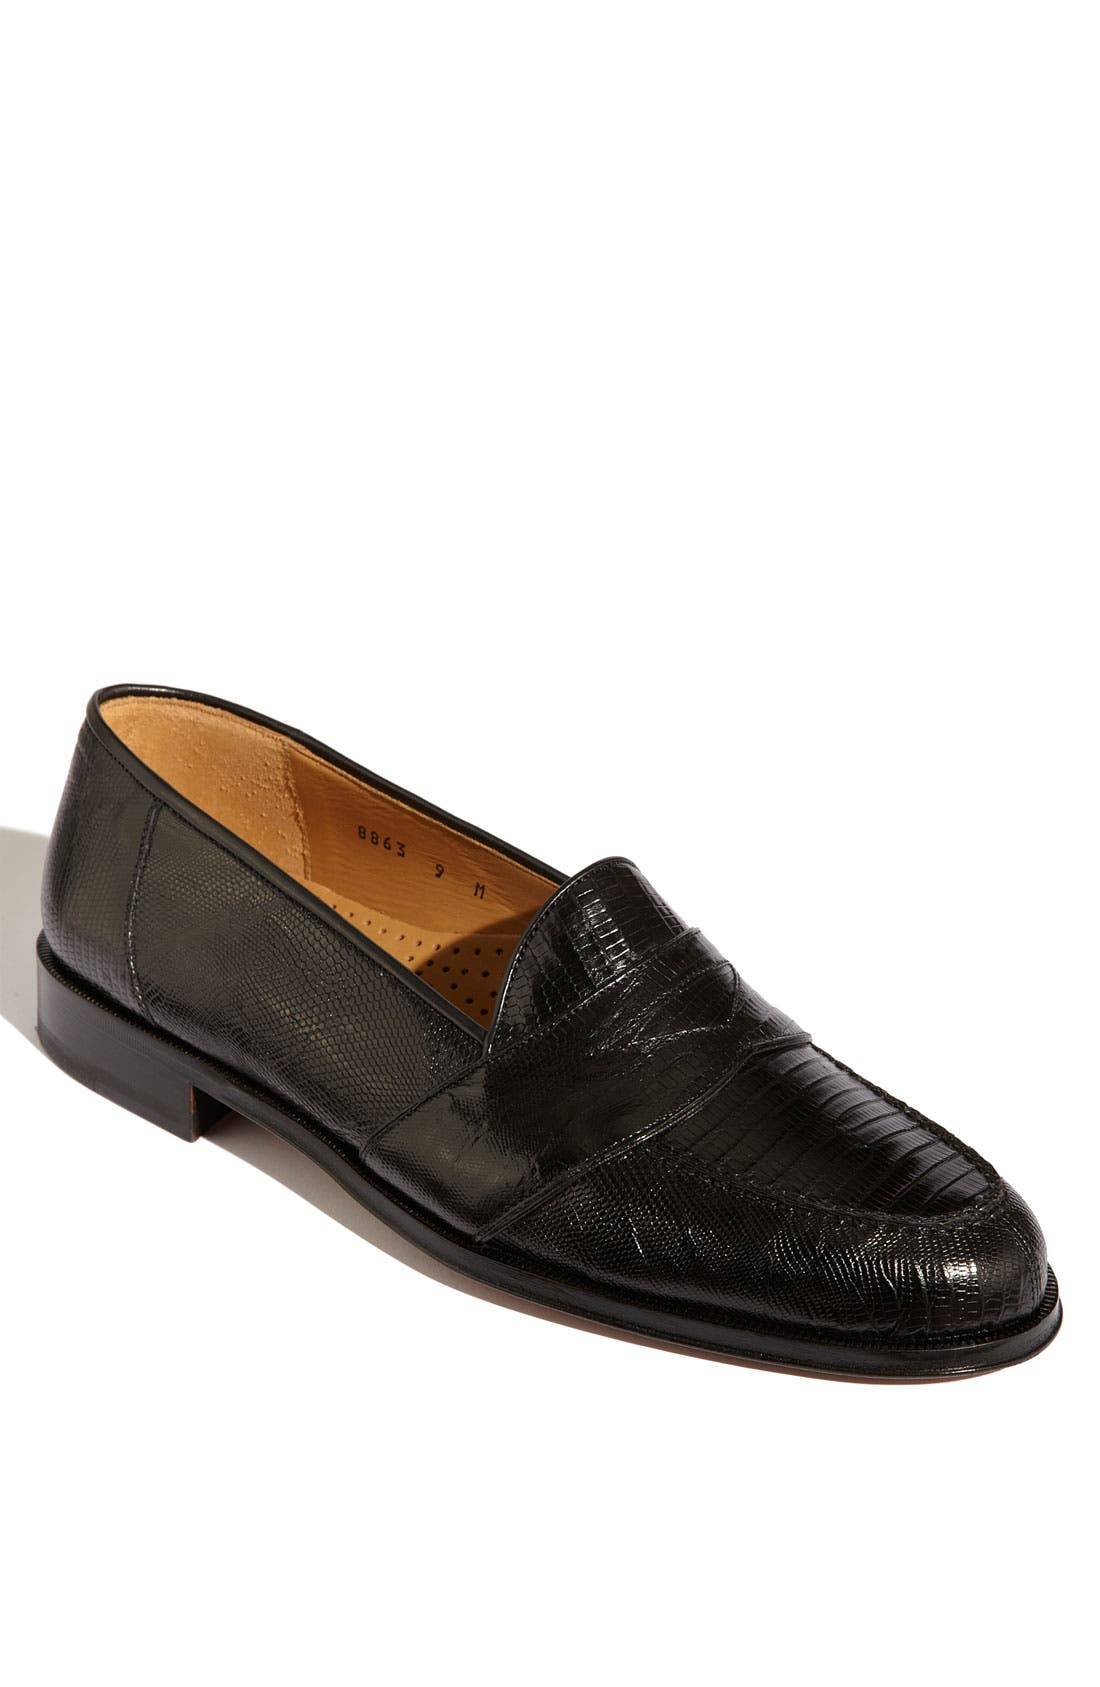 Main Image - Magnanni 'Raul' Lizard Loafer